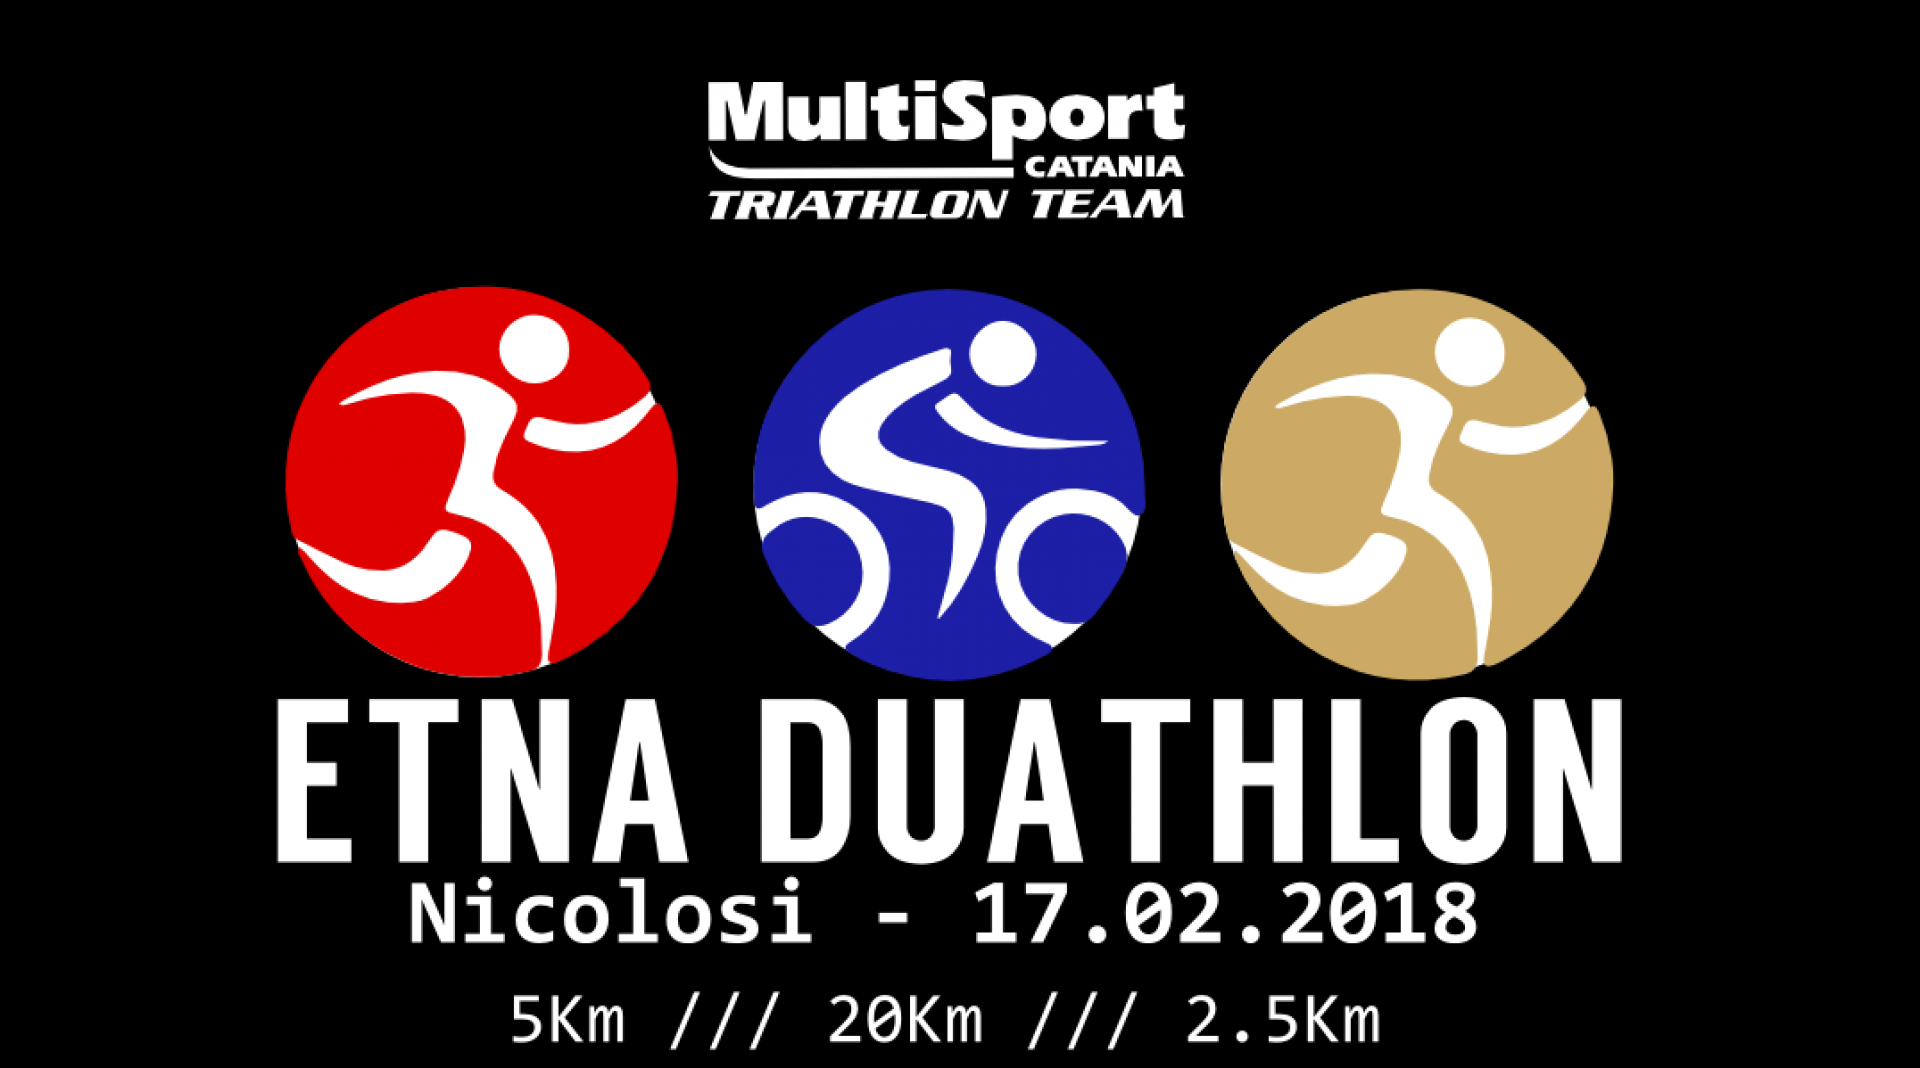 Multisport Catania Triathlon Team